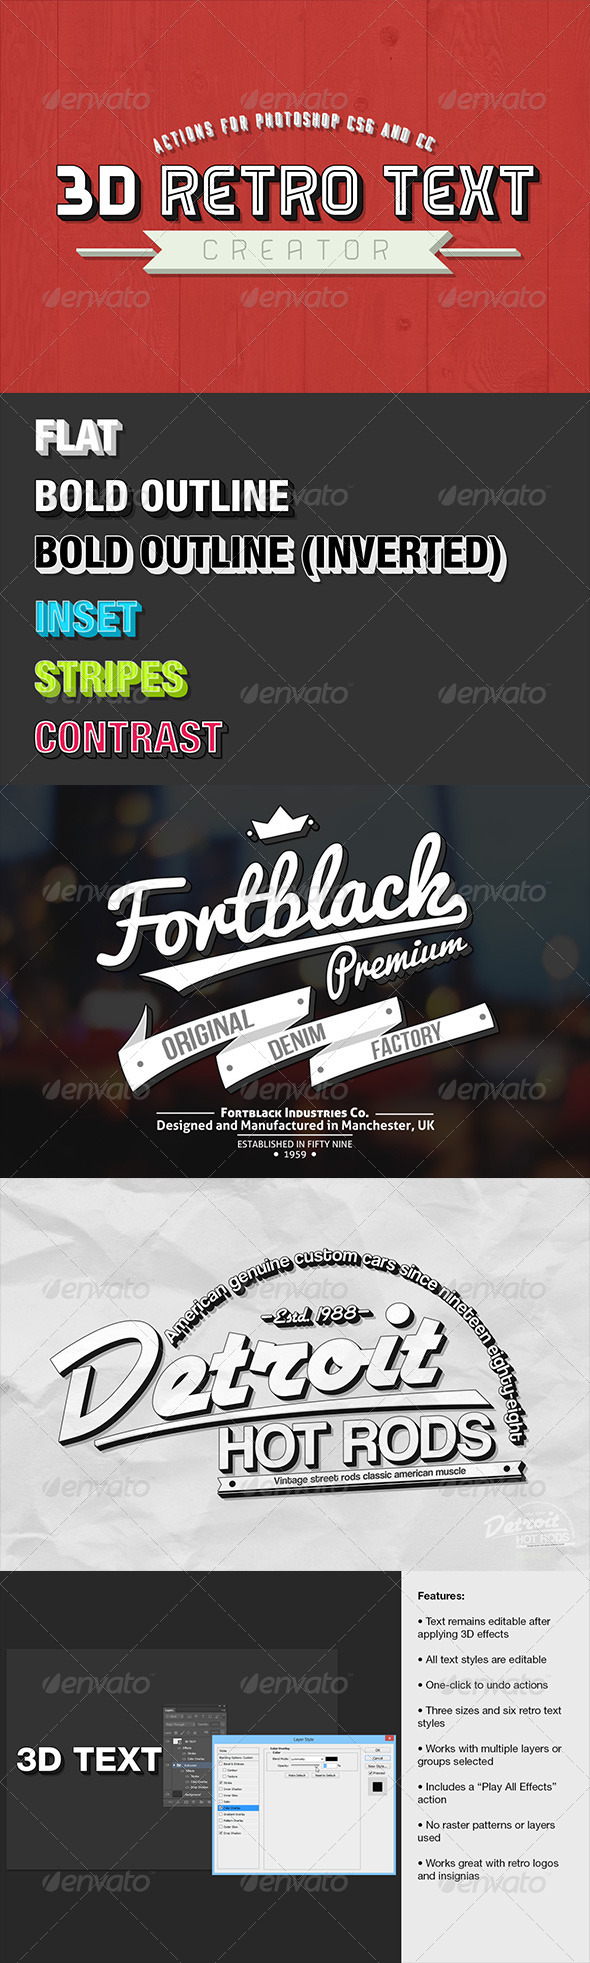 GraphicRiver 3D Retro Text Creator 7479172